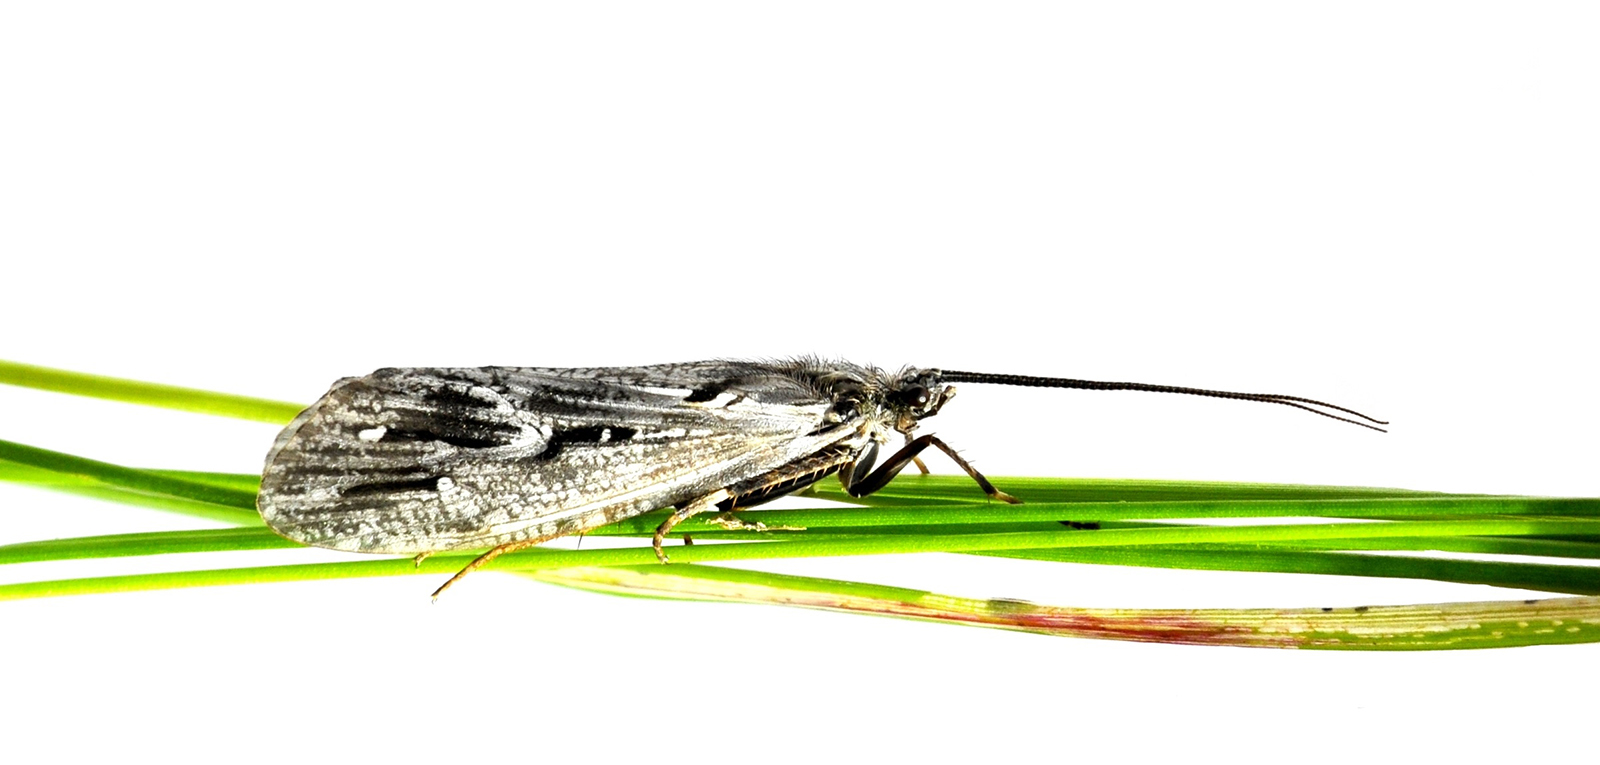 Most people know the caddisfly as the artificial bug on fly fishing lures.